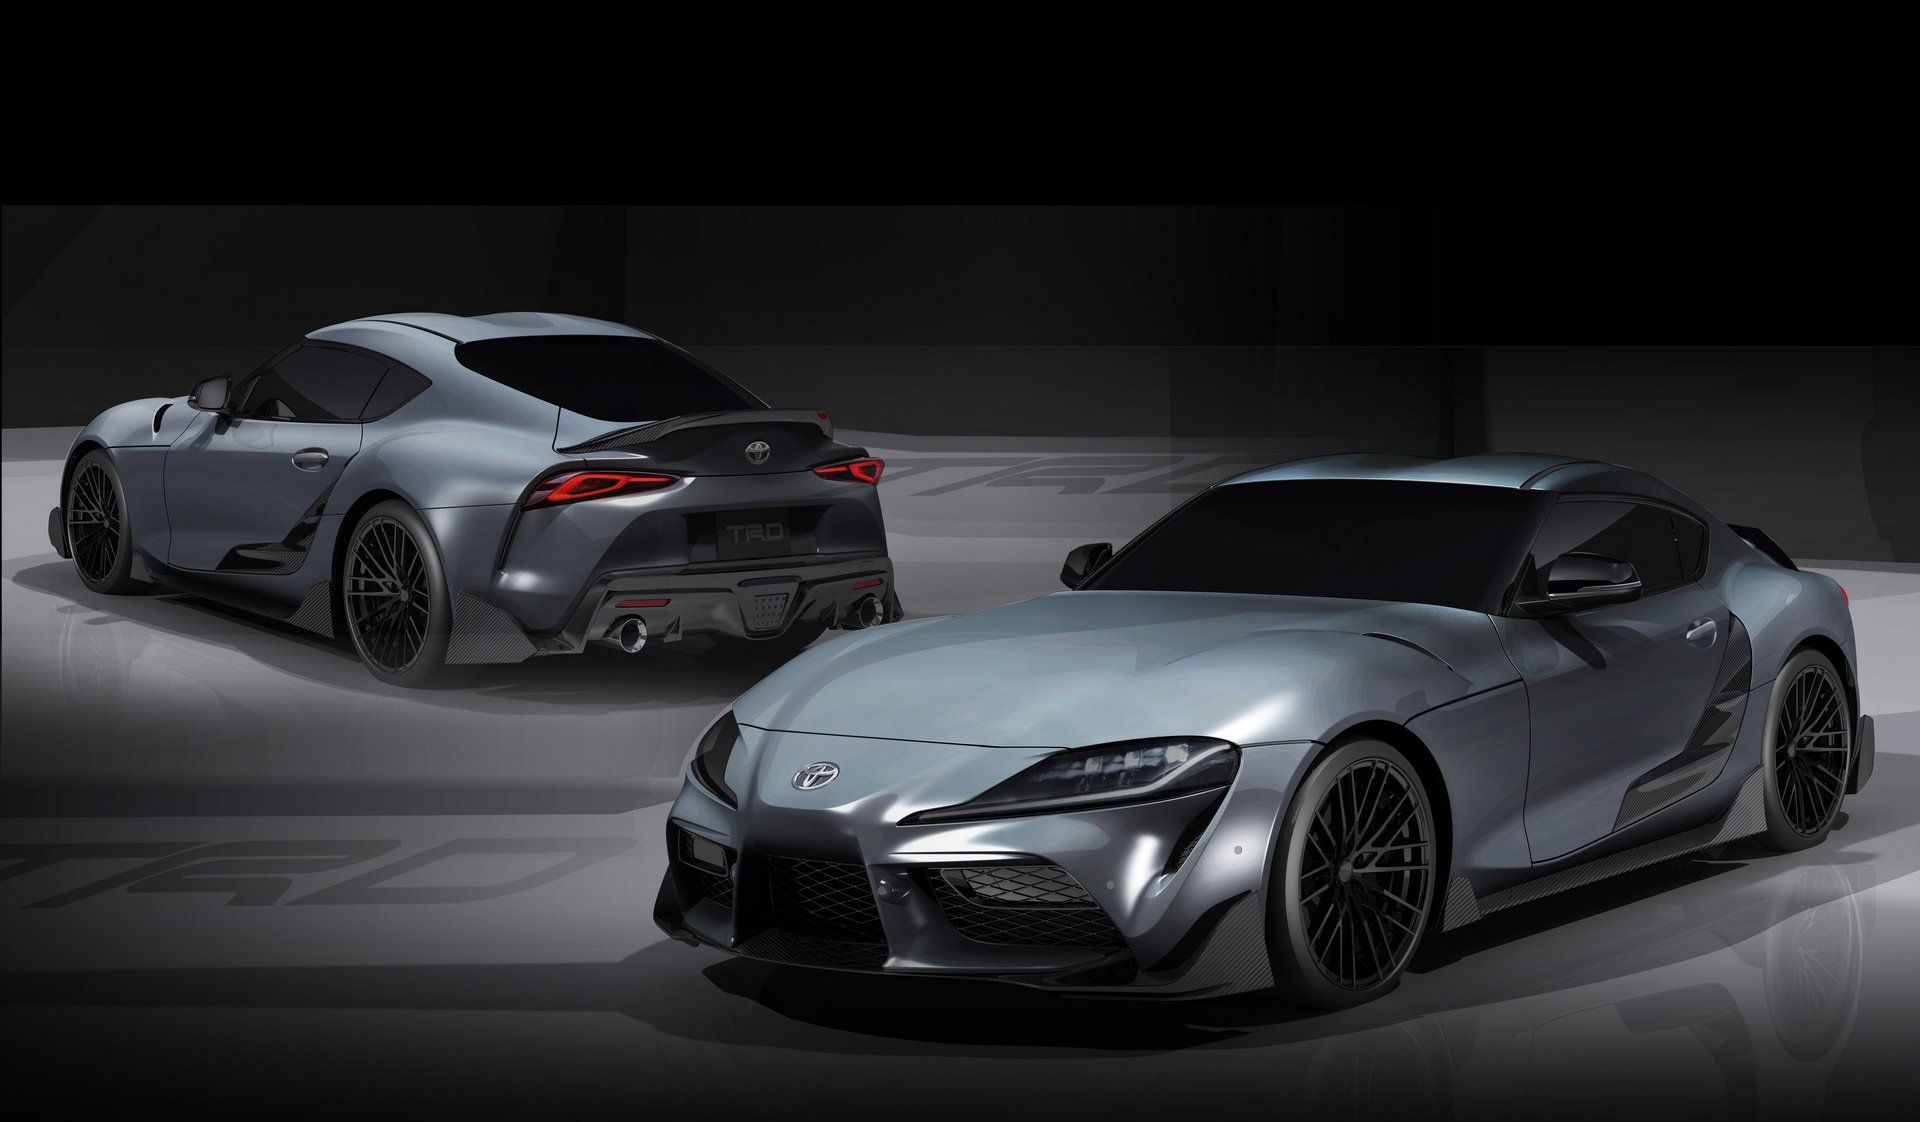 Trd Gives 2020 Toyota Gr Supra First Real Tune With Performance Line Concept Carscoops New Toyota Supra Toyota Supra Toyota Racing Development